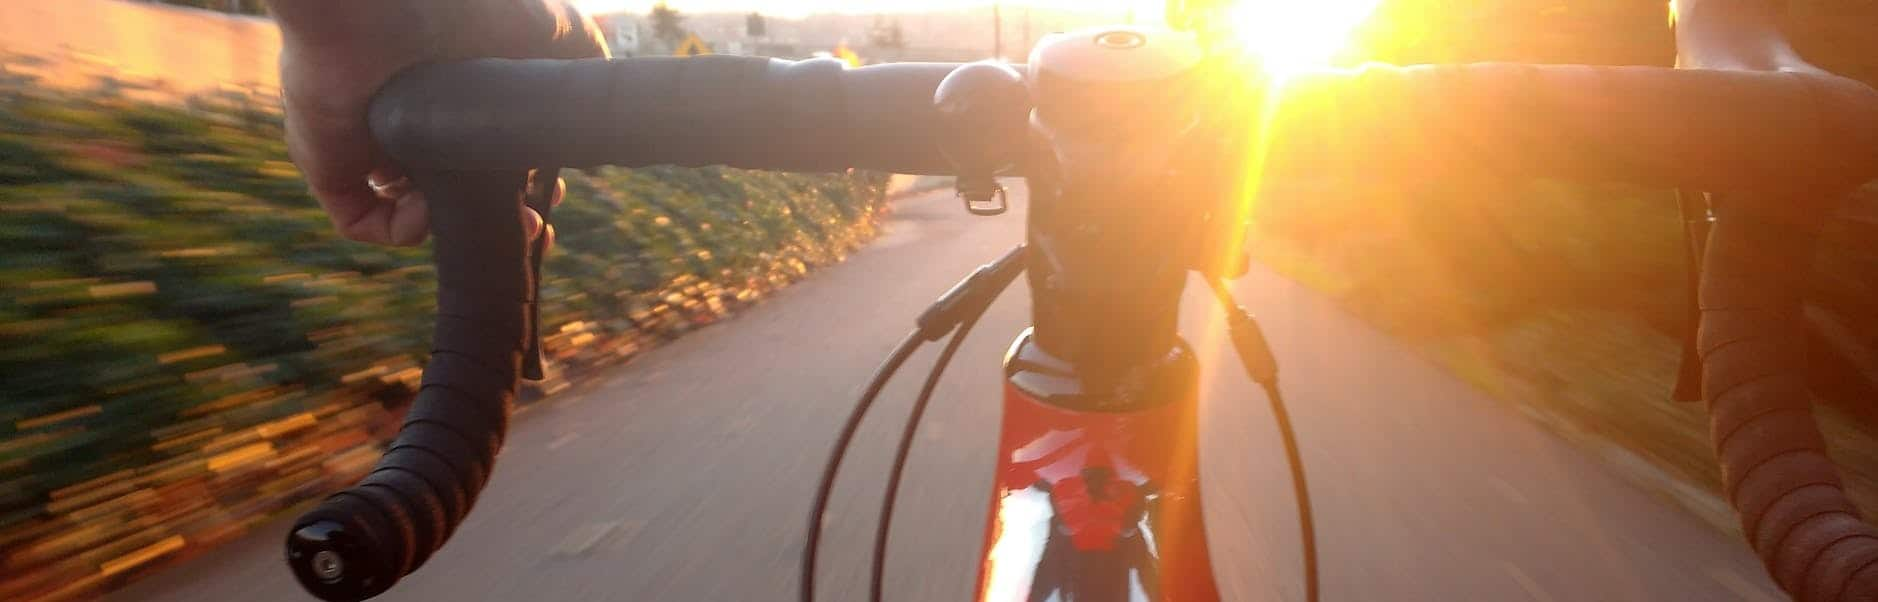 cyclist eye view from bike